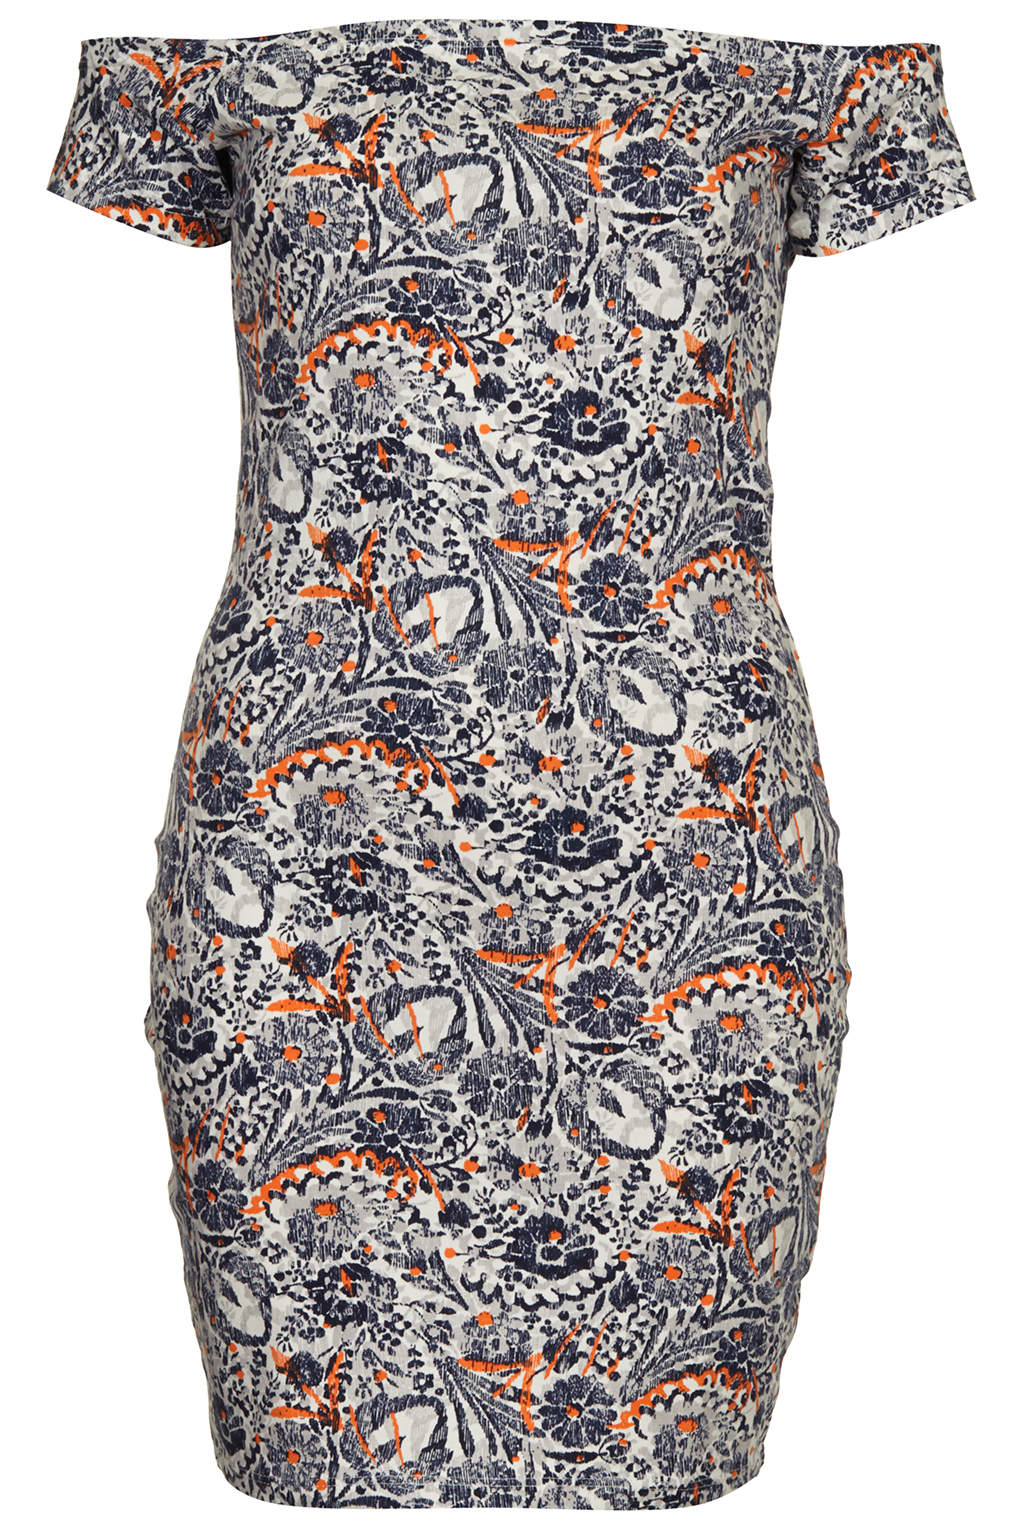 Topshop Off Shoulder Floral Bodycon Dress By Annie